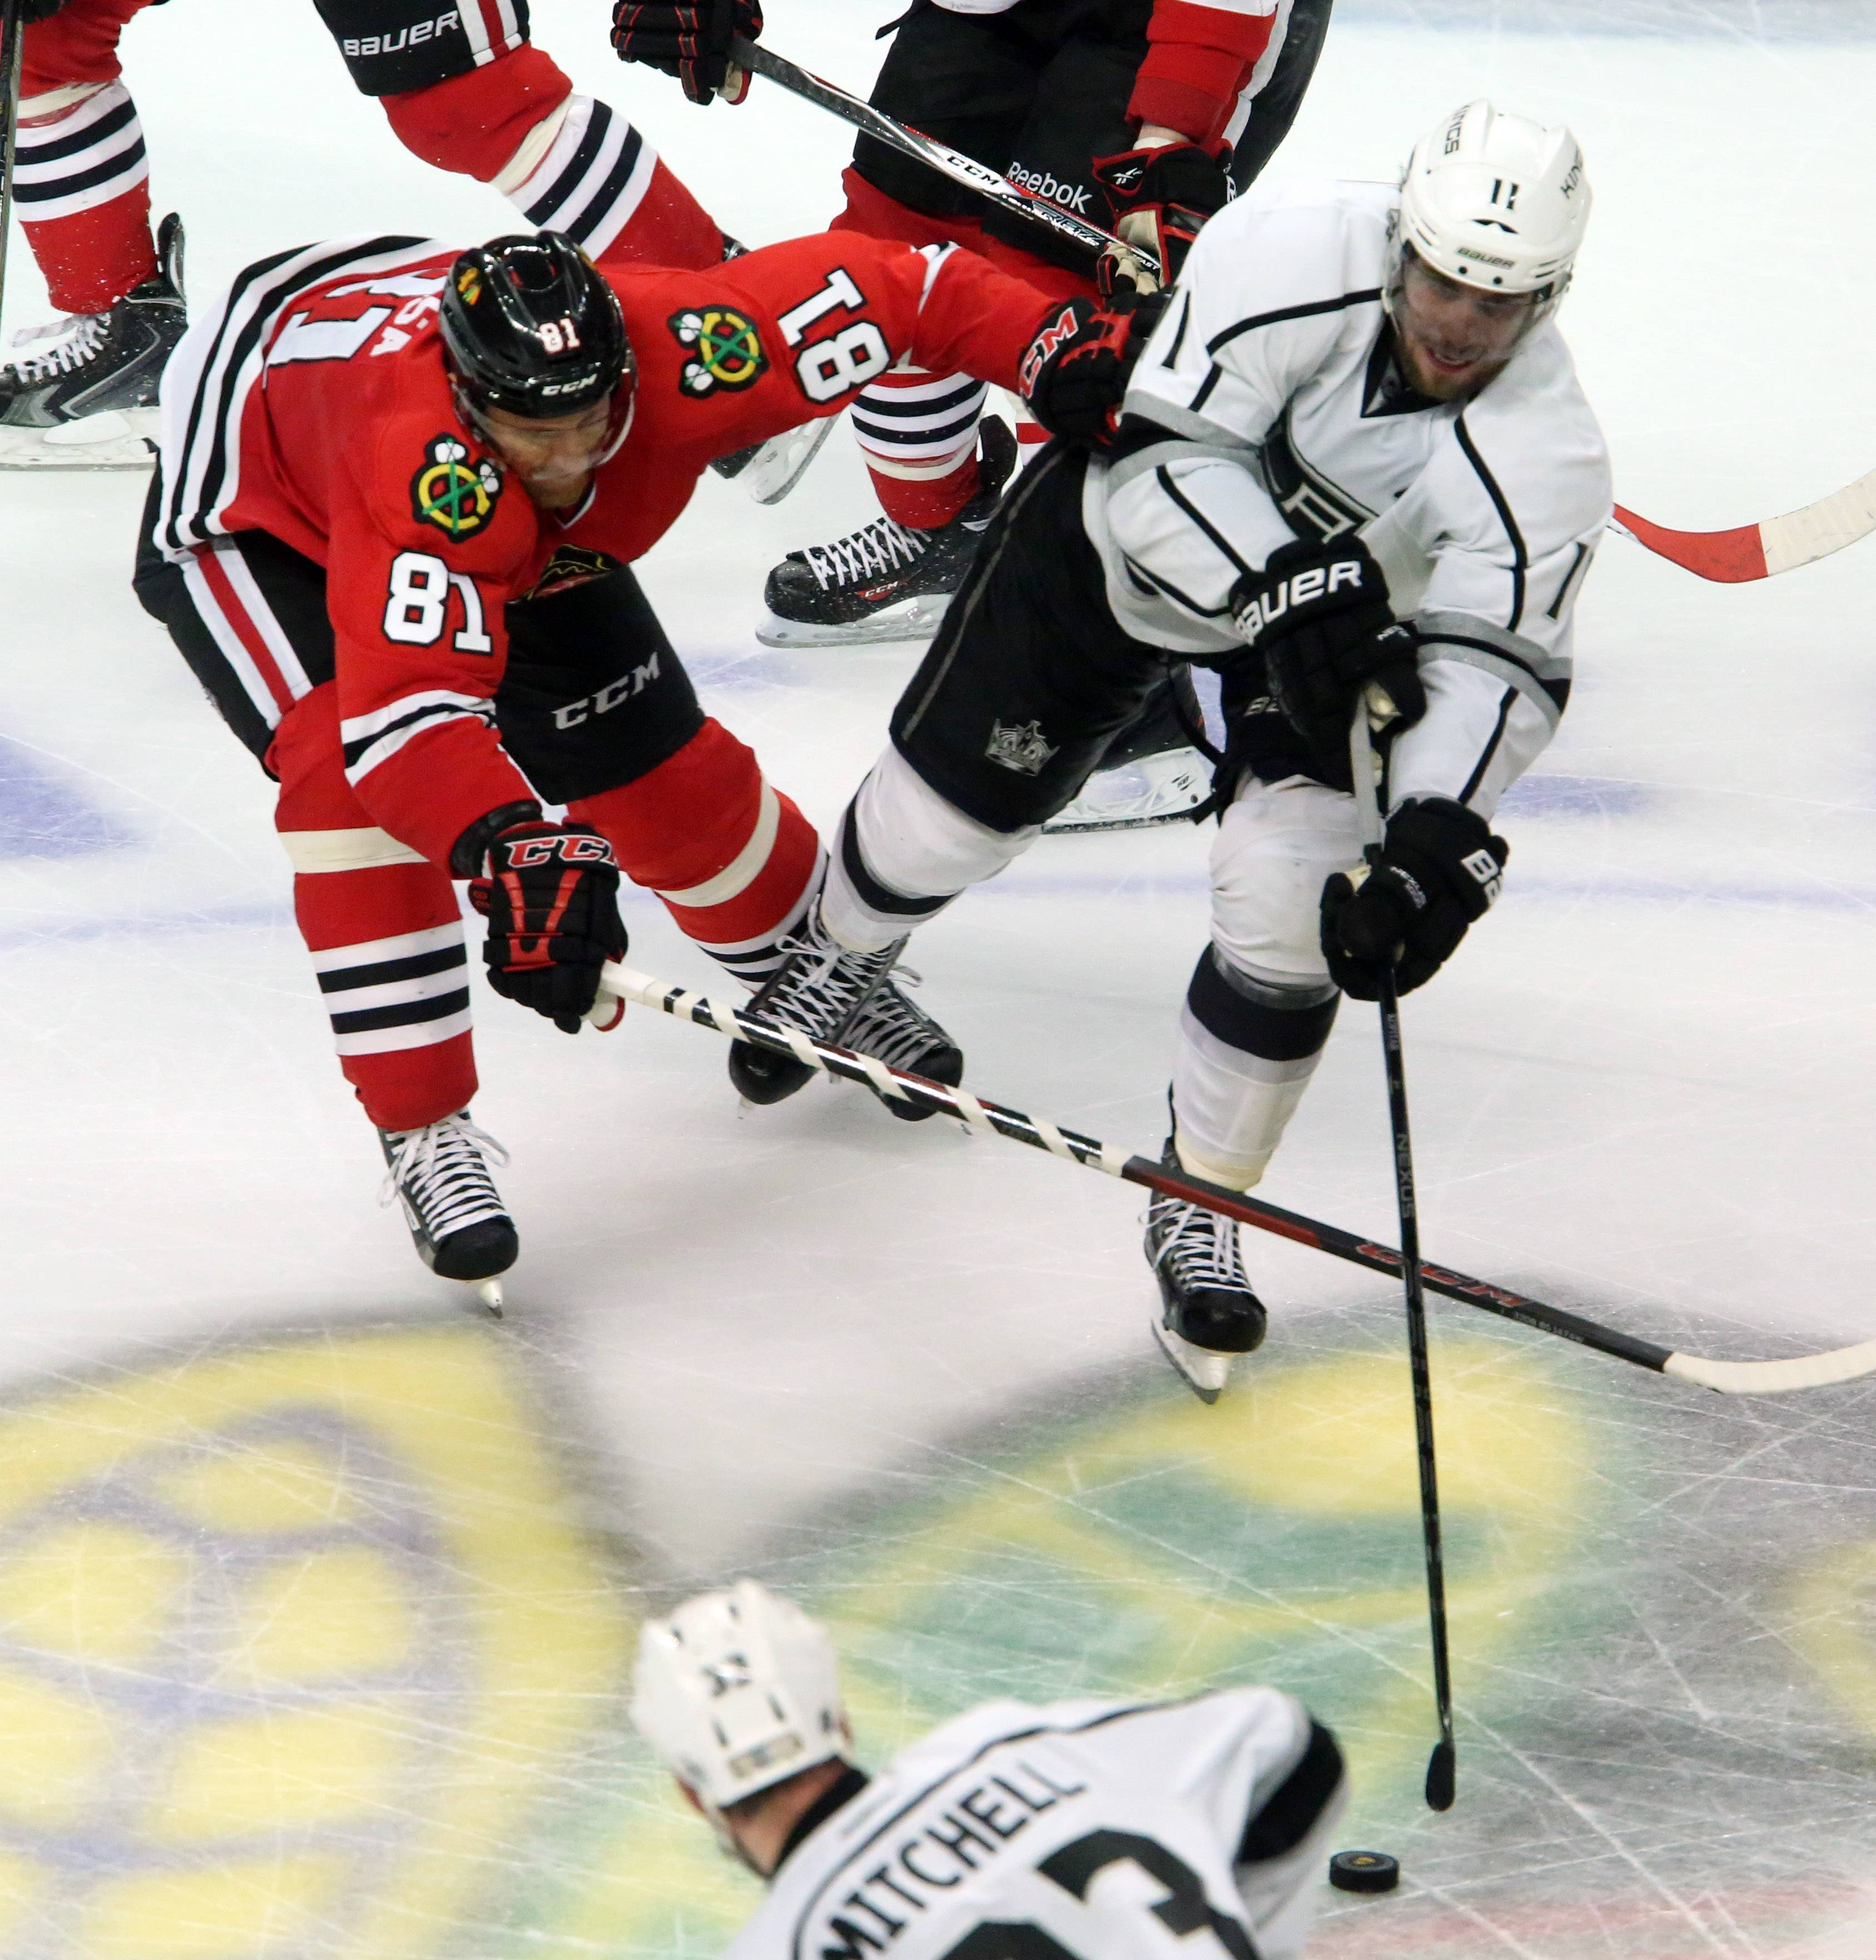 George LeClaire/gleclaire@dailyherald.com Chicago Blackhawks right wing Marian Hossa and Los Angeles Kings center Anze Kopitar race to a loose puck in the third period of Game 7 of the Western Conference finals Sunday at the United Center in Chicago.